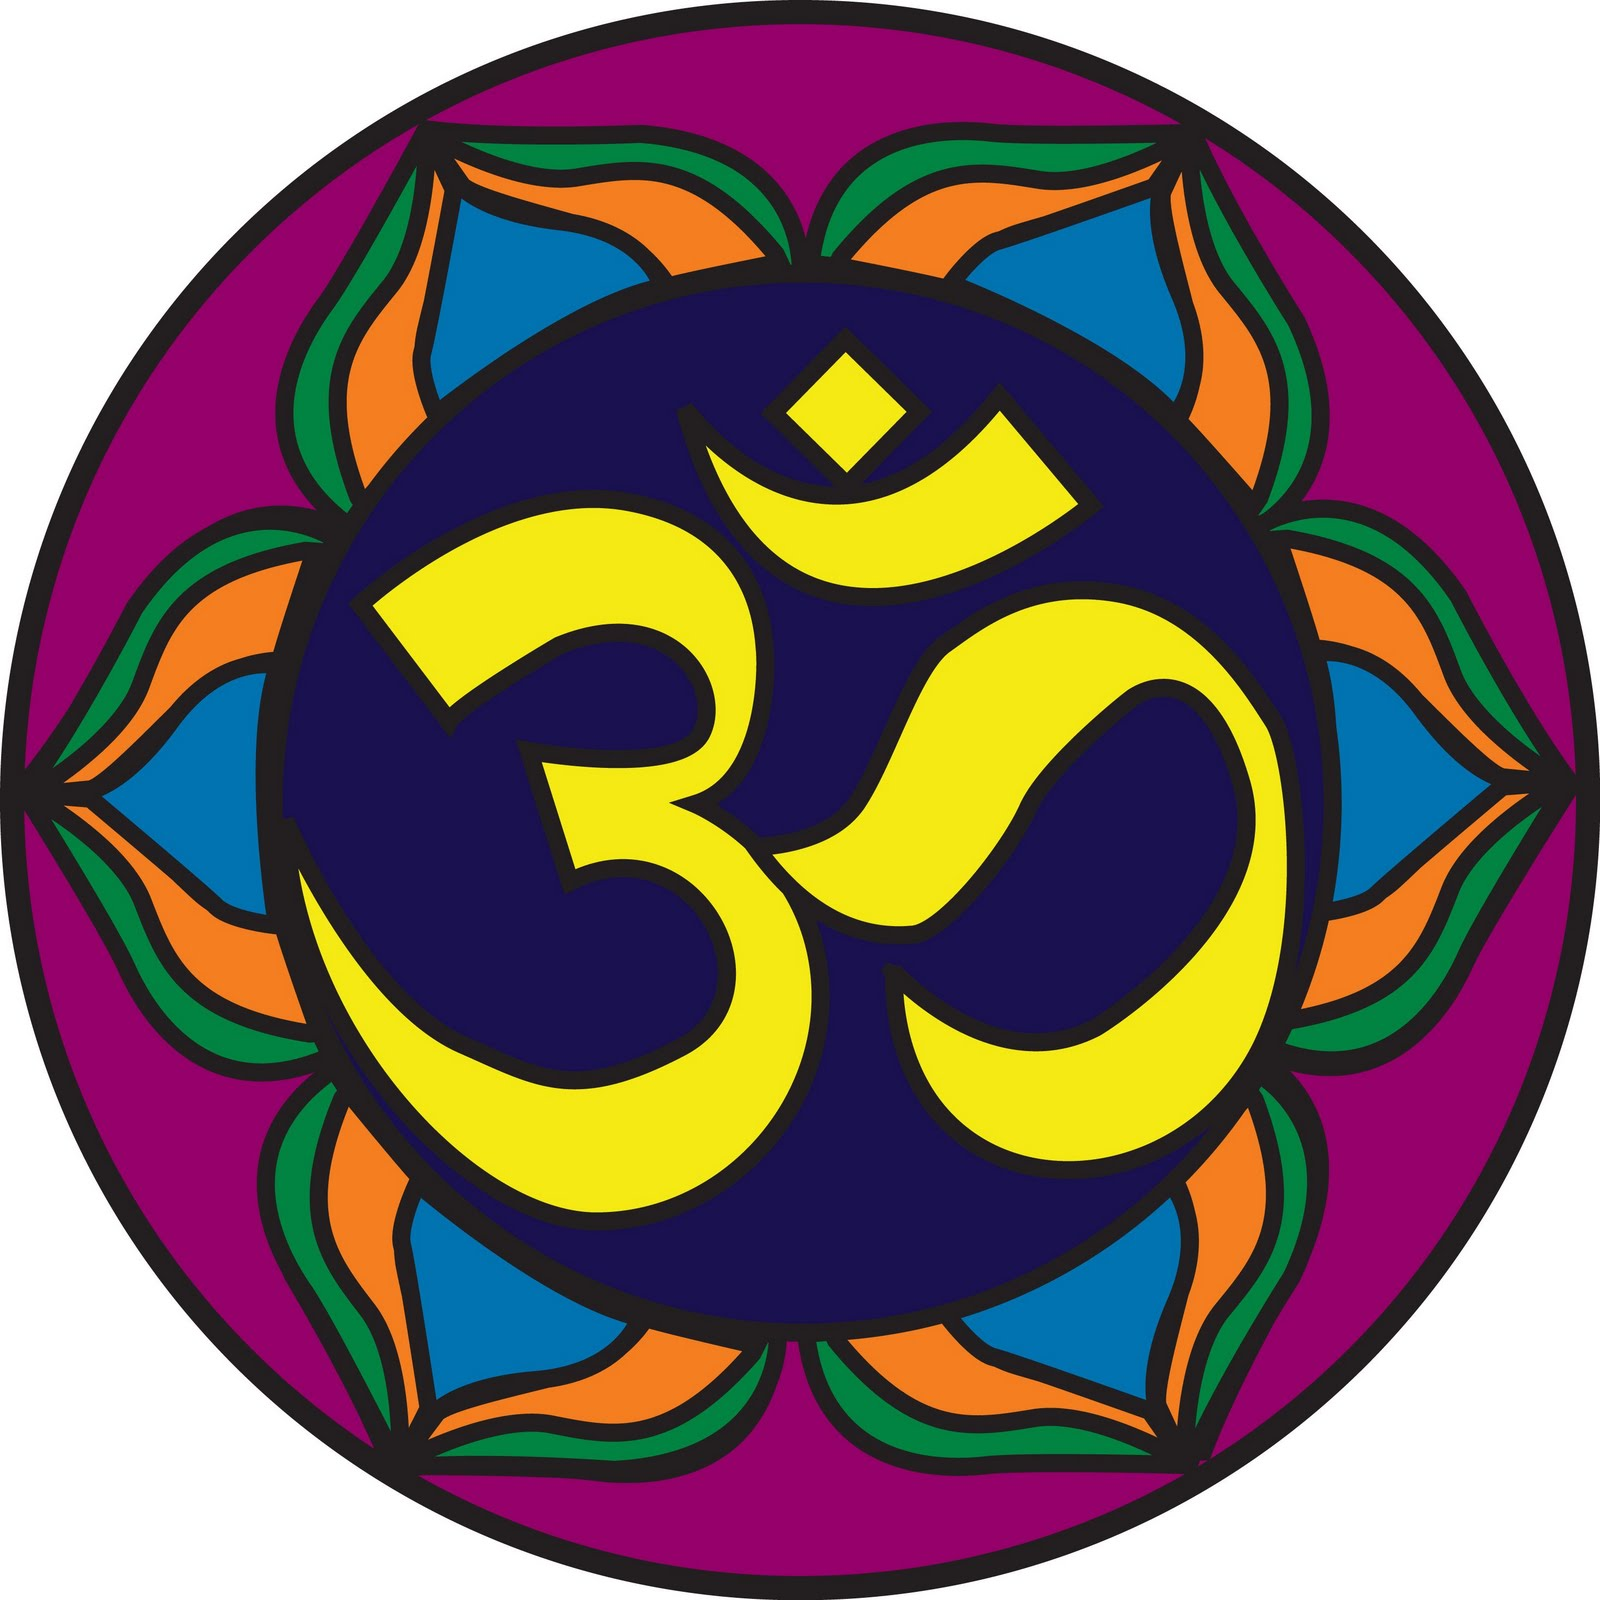 hindu dharma Sanatana dharma the word 'hinduism' was coined by the west to identify the religion of the people of india the persians originally called the people living on the banks of the sindhu river as 'sindhus', but due to their pronunciation of the letter 's' as 'h', the word became hindus.